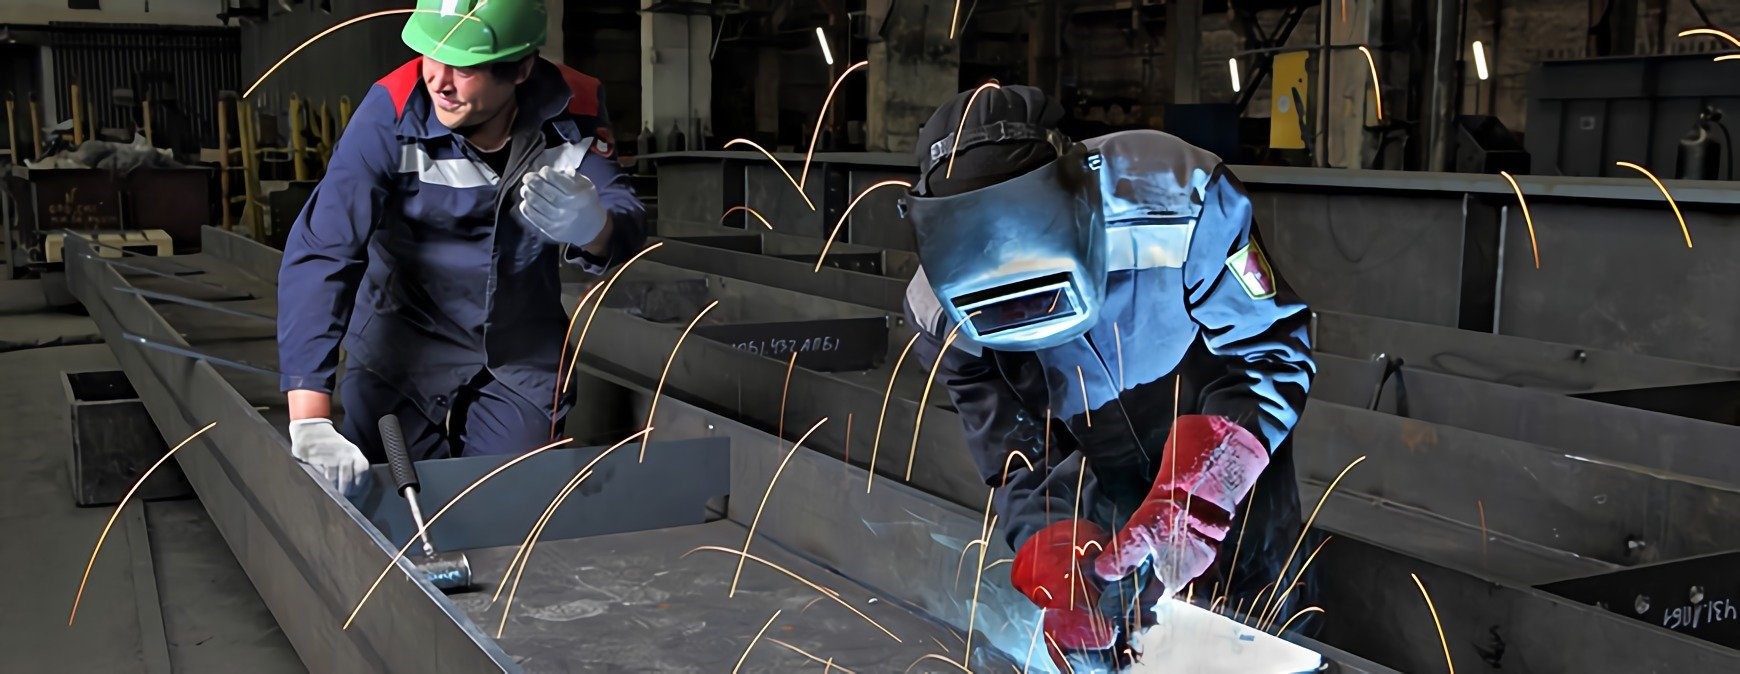 welding in a factory